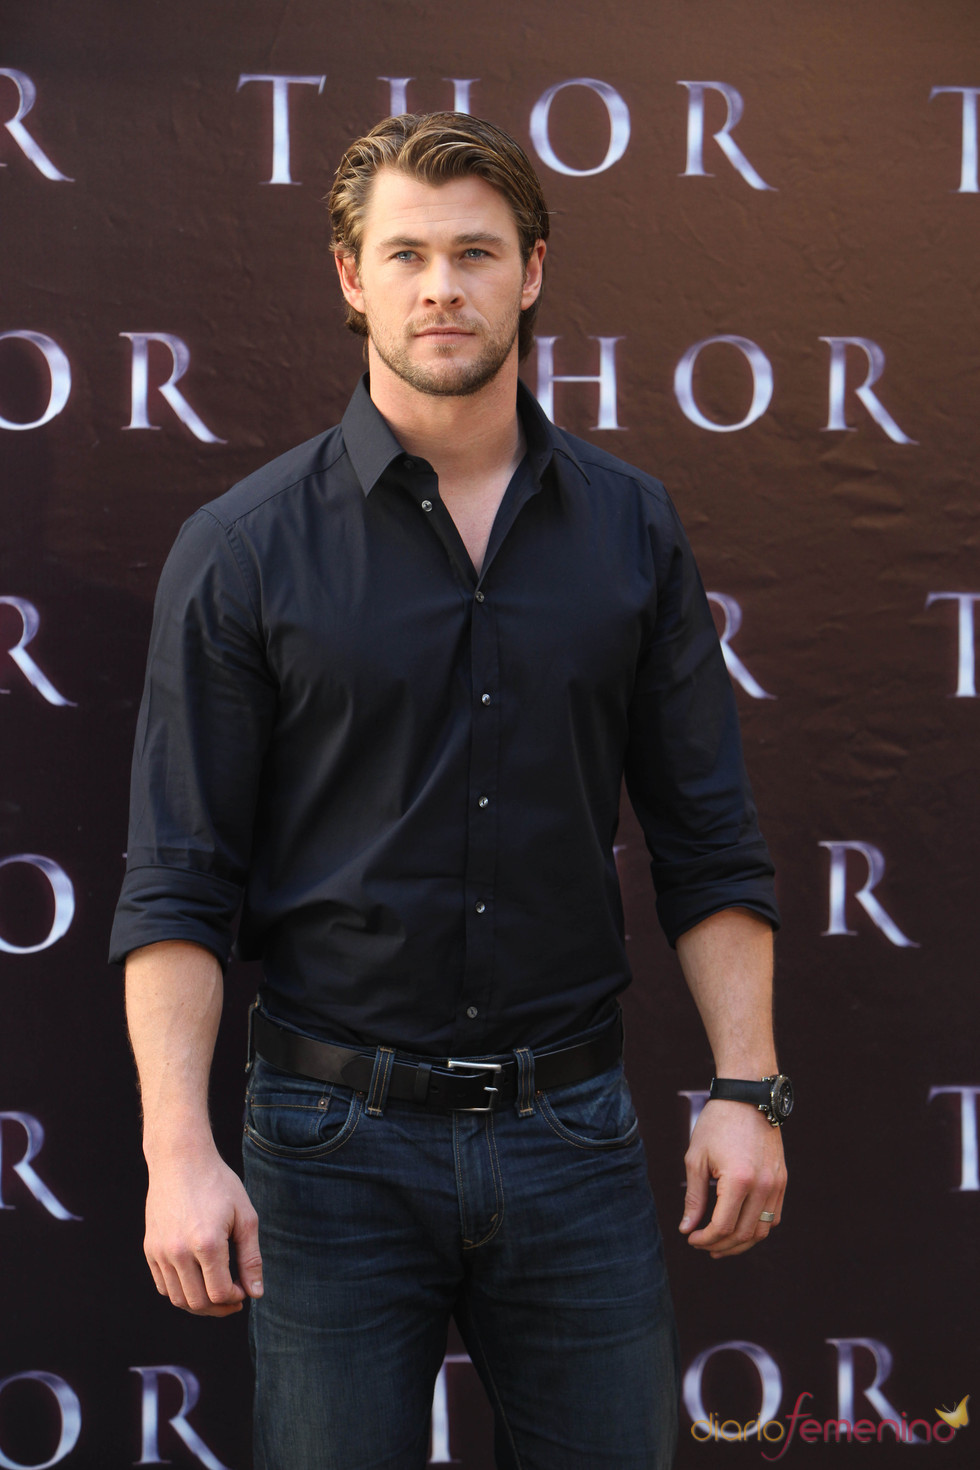 Chris Hemsworth presenta en España 'Thor'